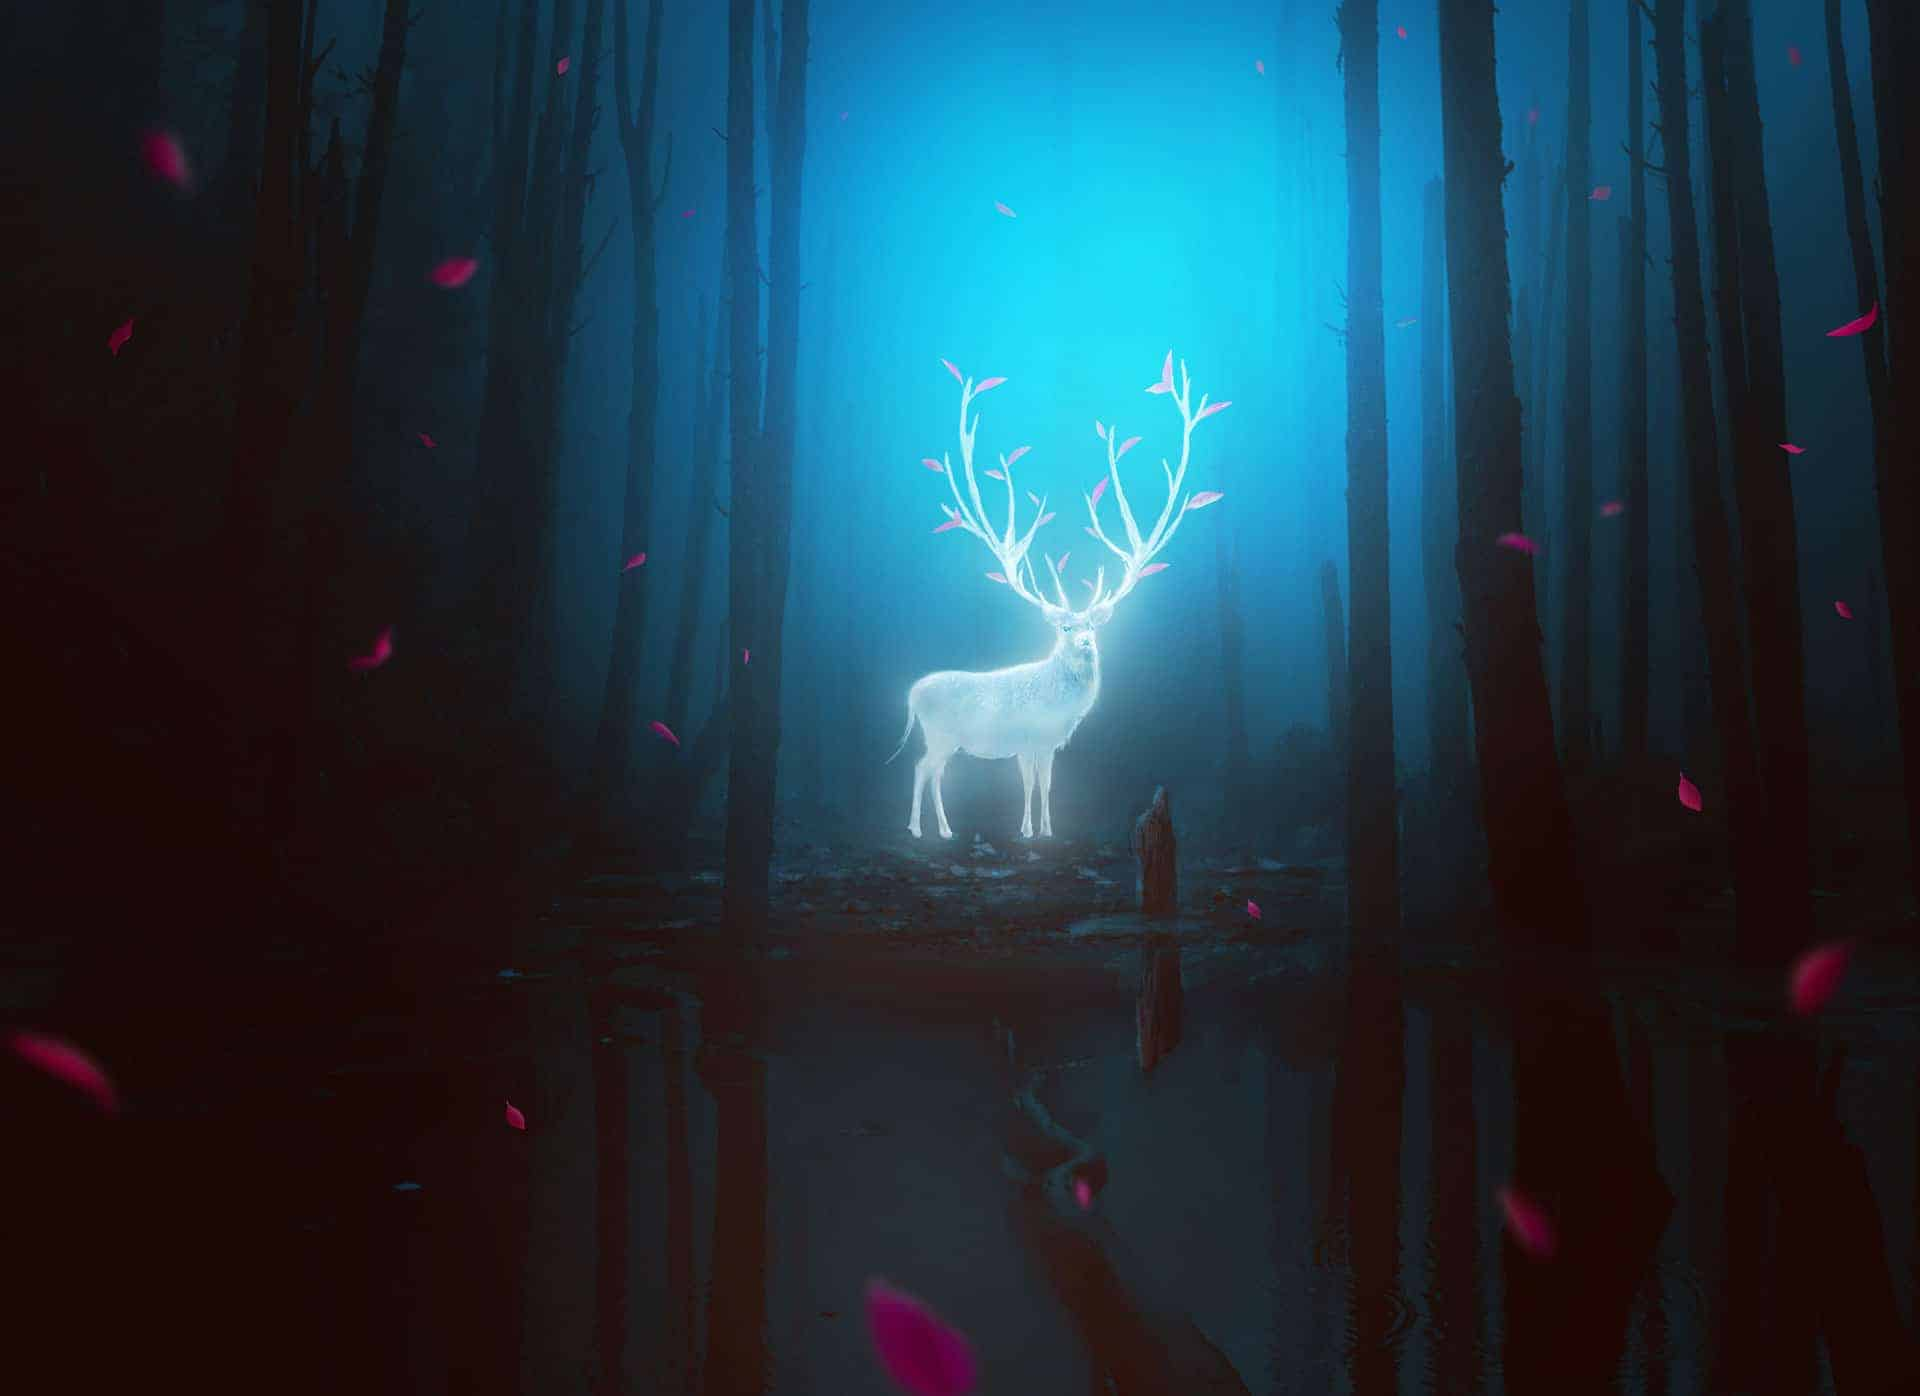 How to Create a Fantasy Deer Photo Manipulation With Adobe Photoshop